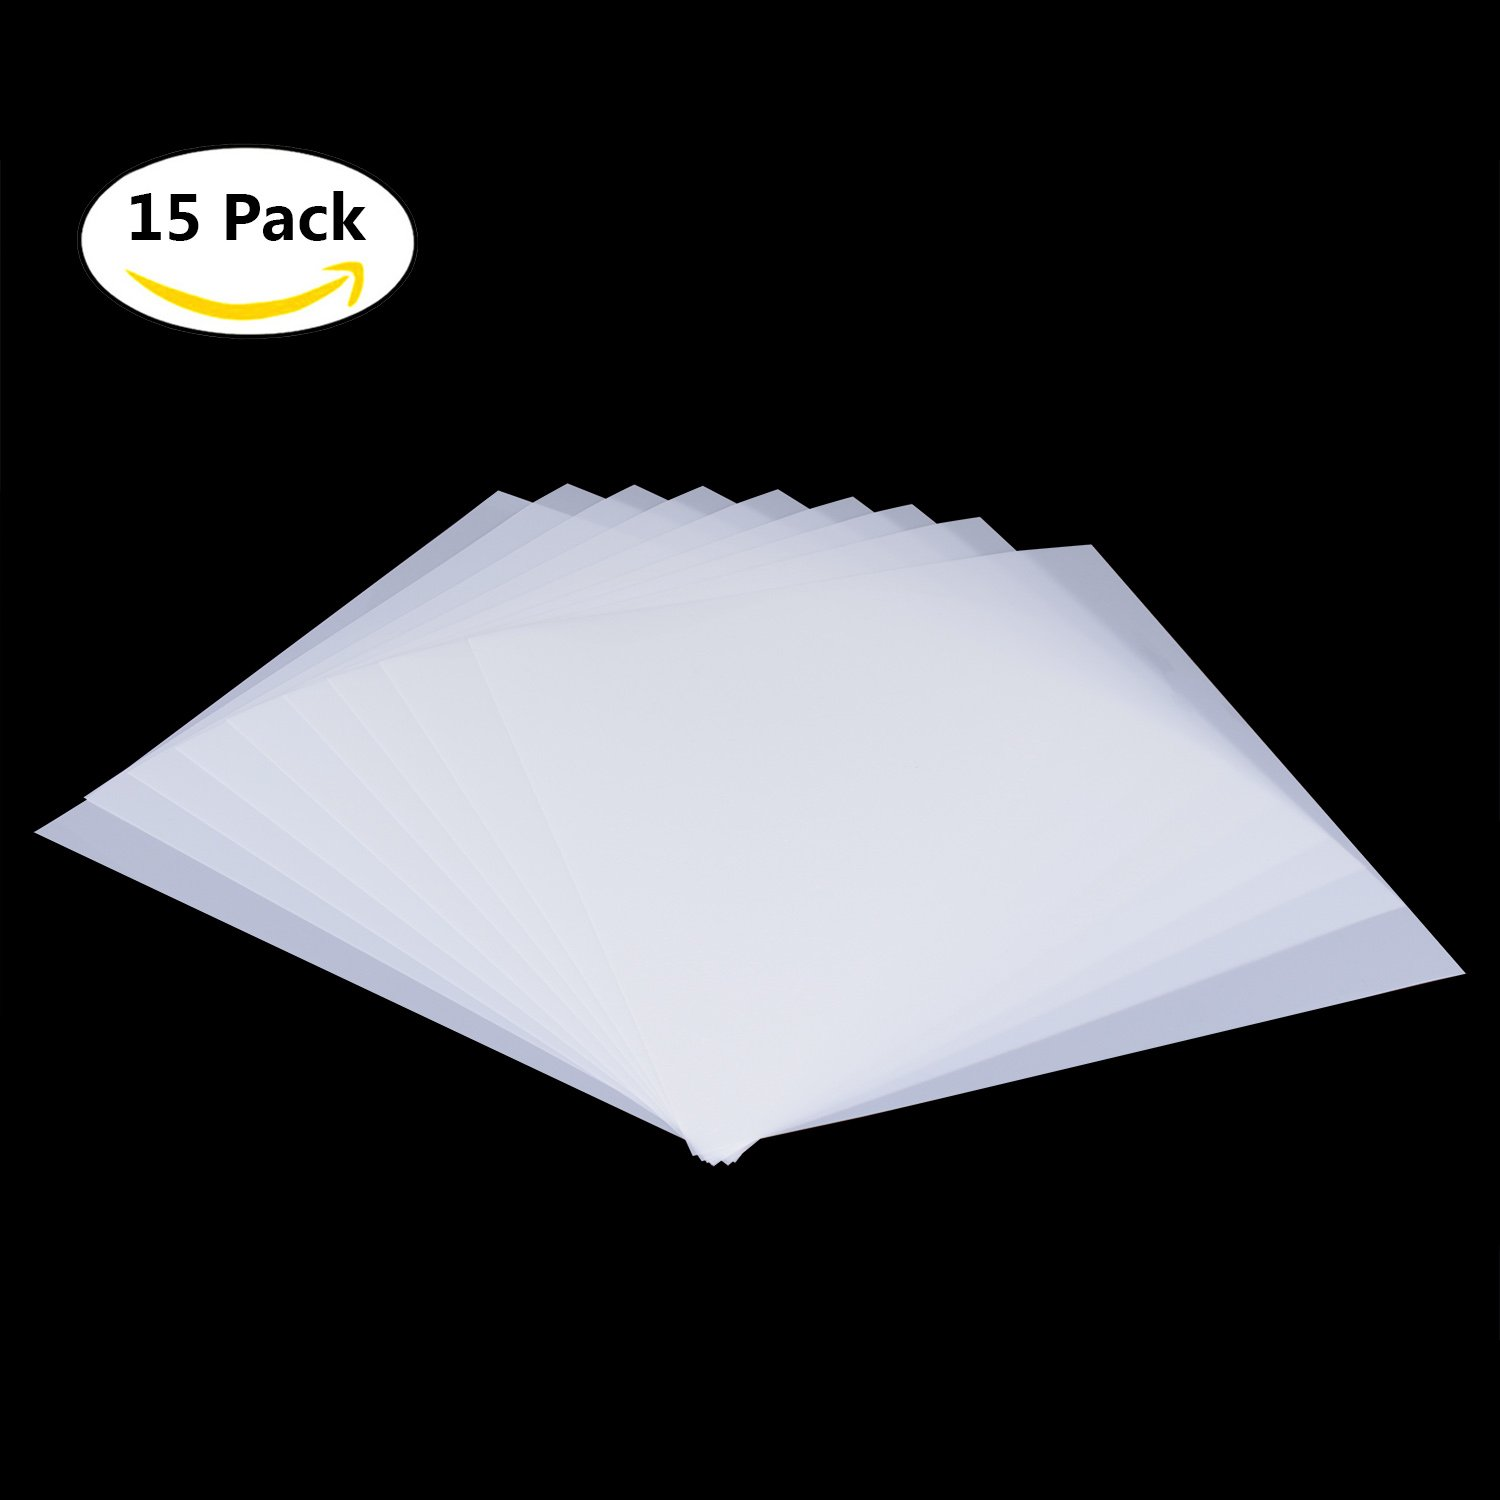 15 Pieces Blank Stencil Sheets,Square Blank Mylar Templates, Make Your Own Stencils with Cutting Machines, 12 x 12 inch